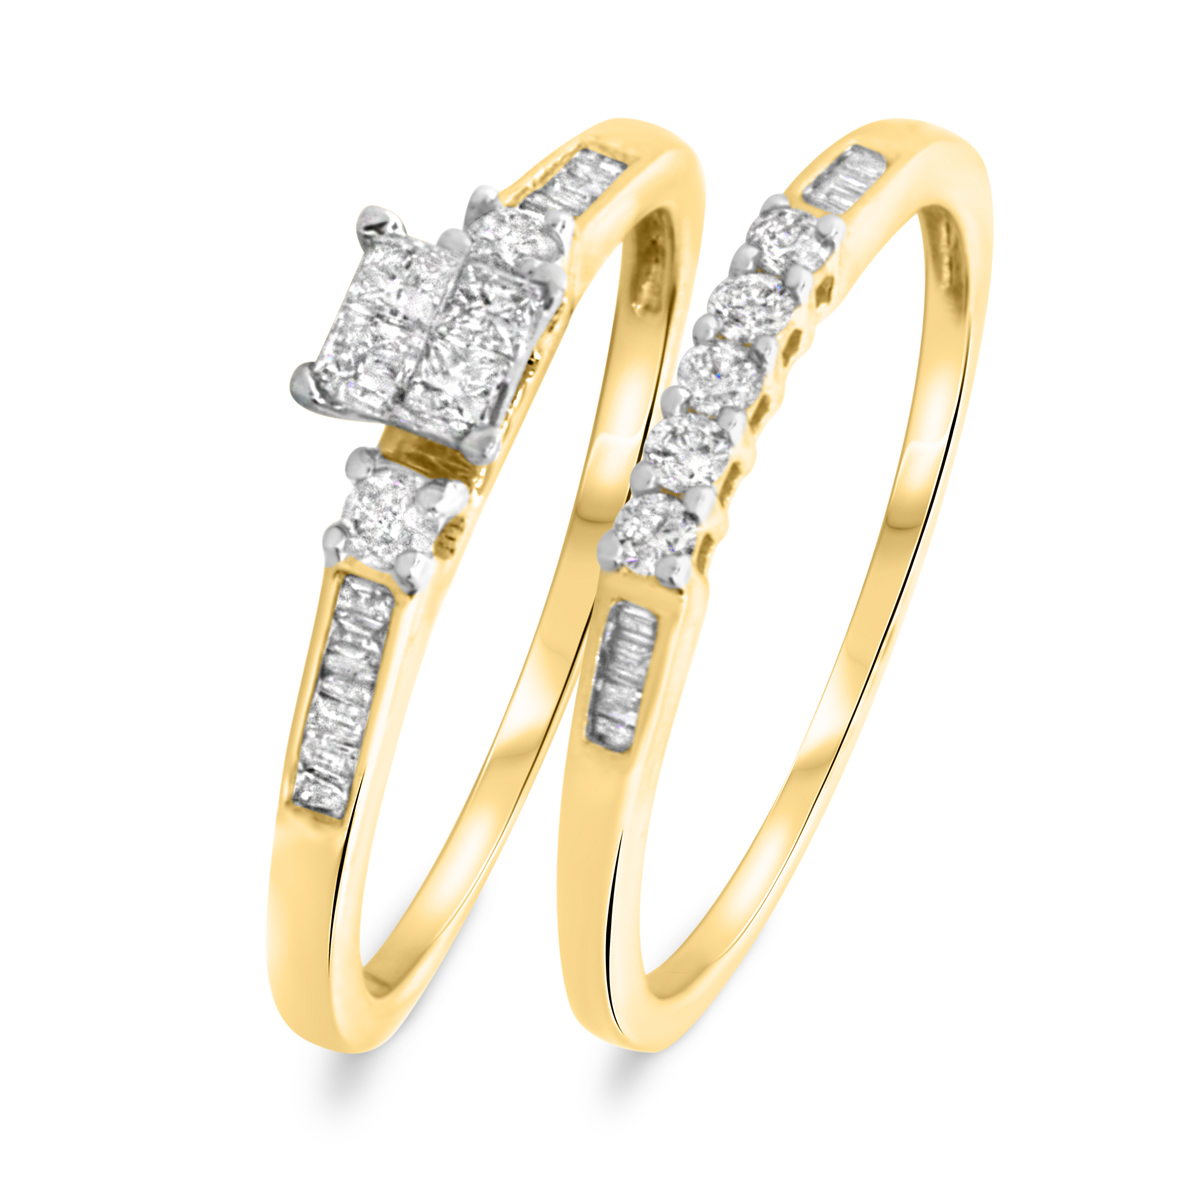 3/8 CT. T.W. Princess, Round, Baguette Cut Diamond Ladies Bridal Wedding Ring Set 10K Yellow Gold